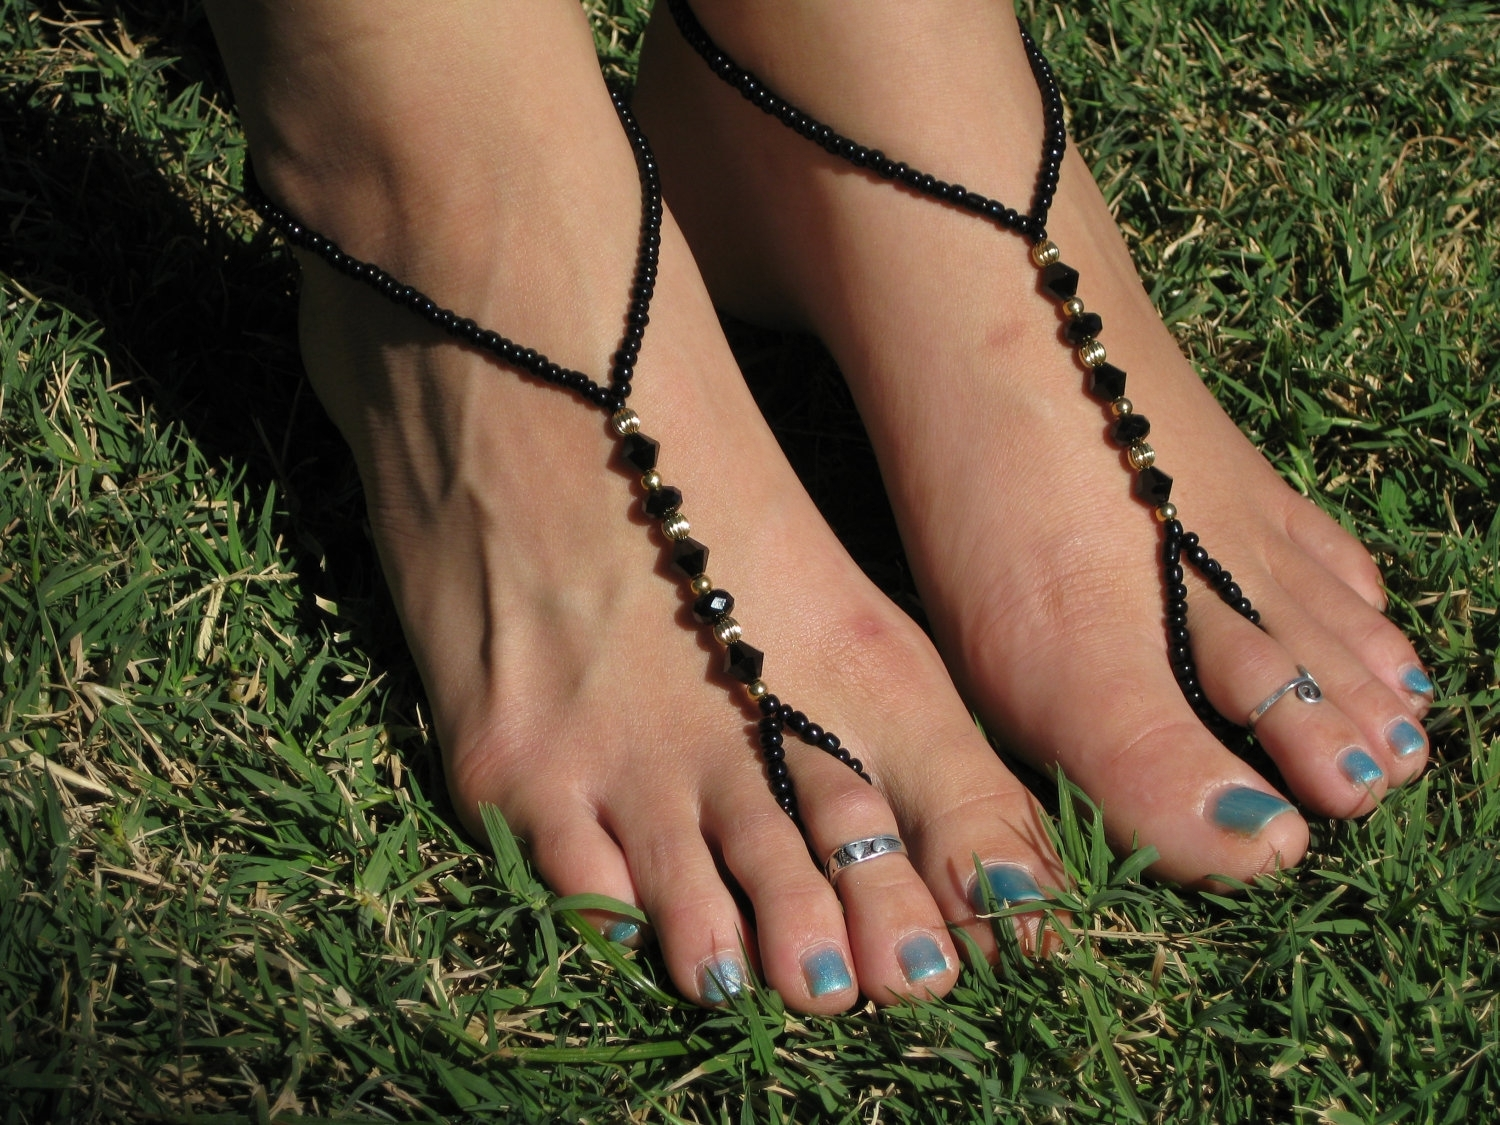 51 Slave Ankle Bracelet, Slave Anklet Harem Anklet Foot Jewelry In Current Ankle Bracelet Toe Rings (Gallery 15 of 25)